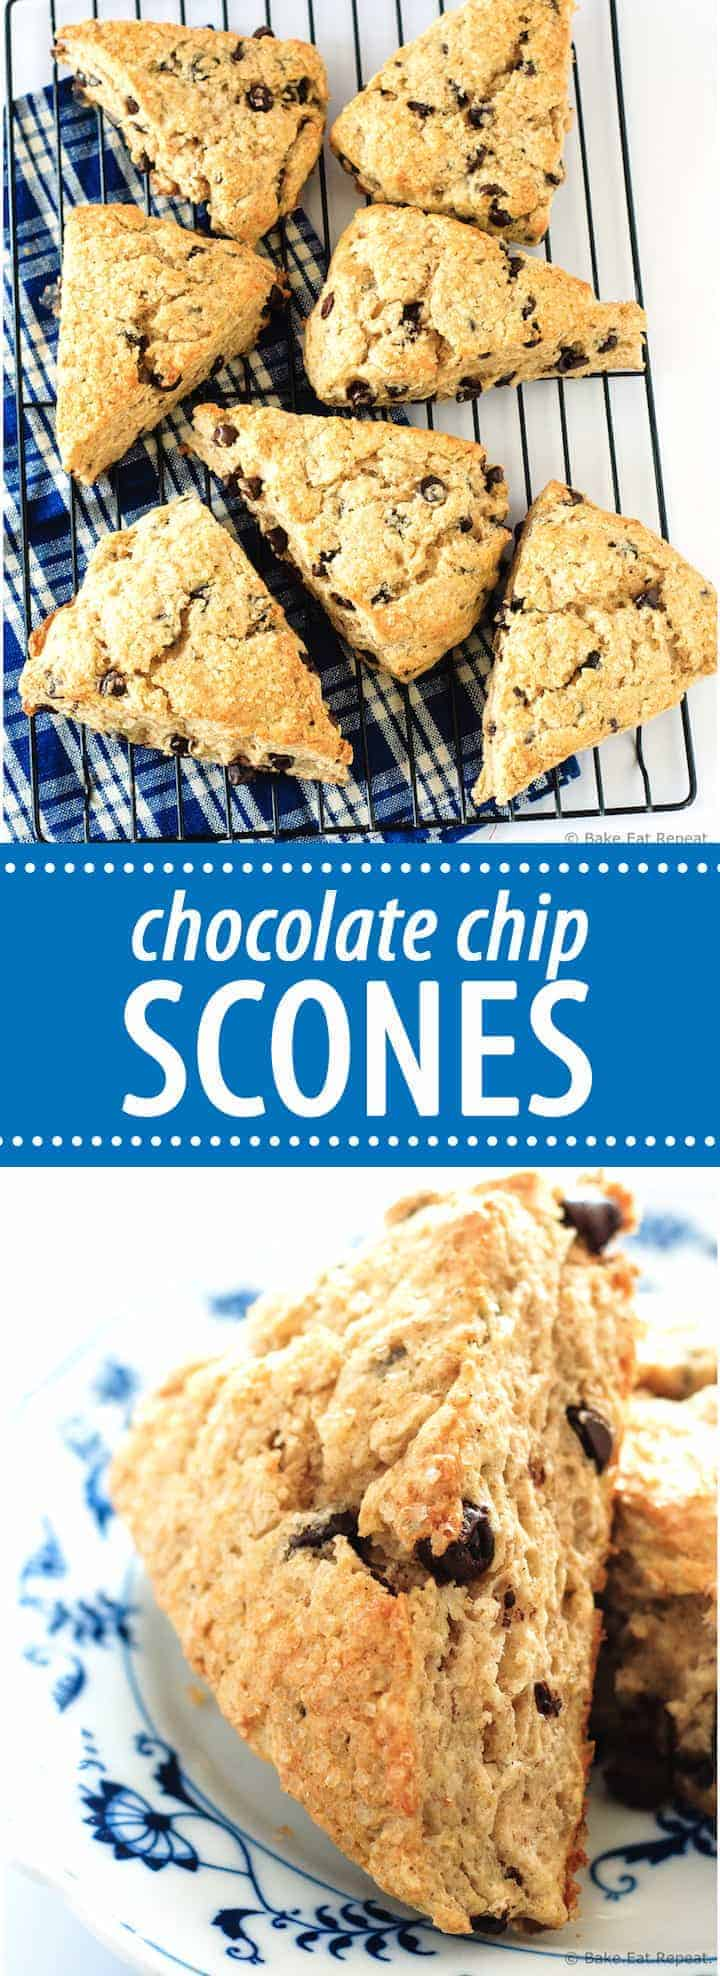 Chocolate Chip Scones - Flaky, tender, filled with chocolate chips and topped with coarse sugar - these scones make the perfect treat with your morning coffee!